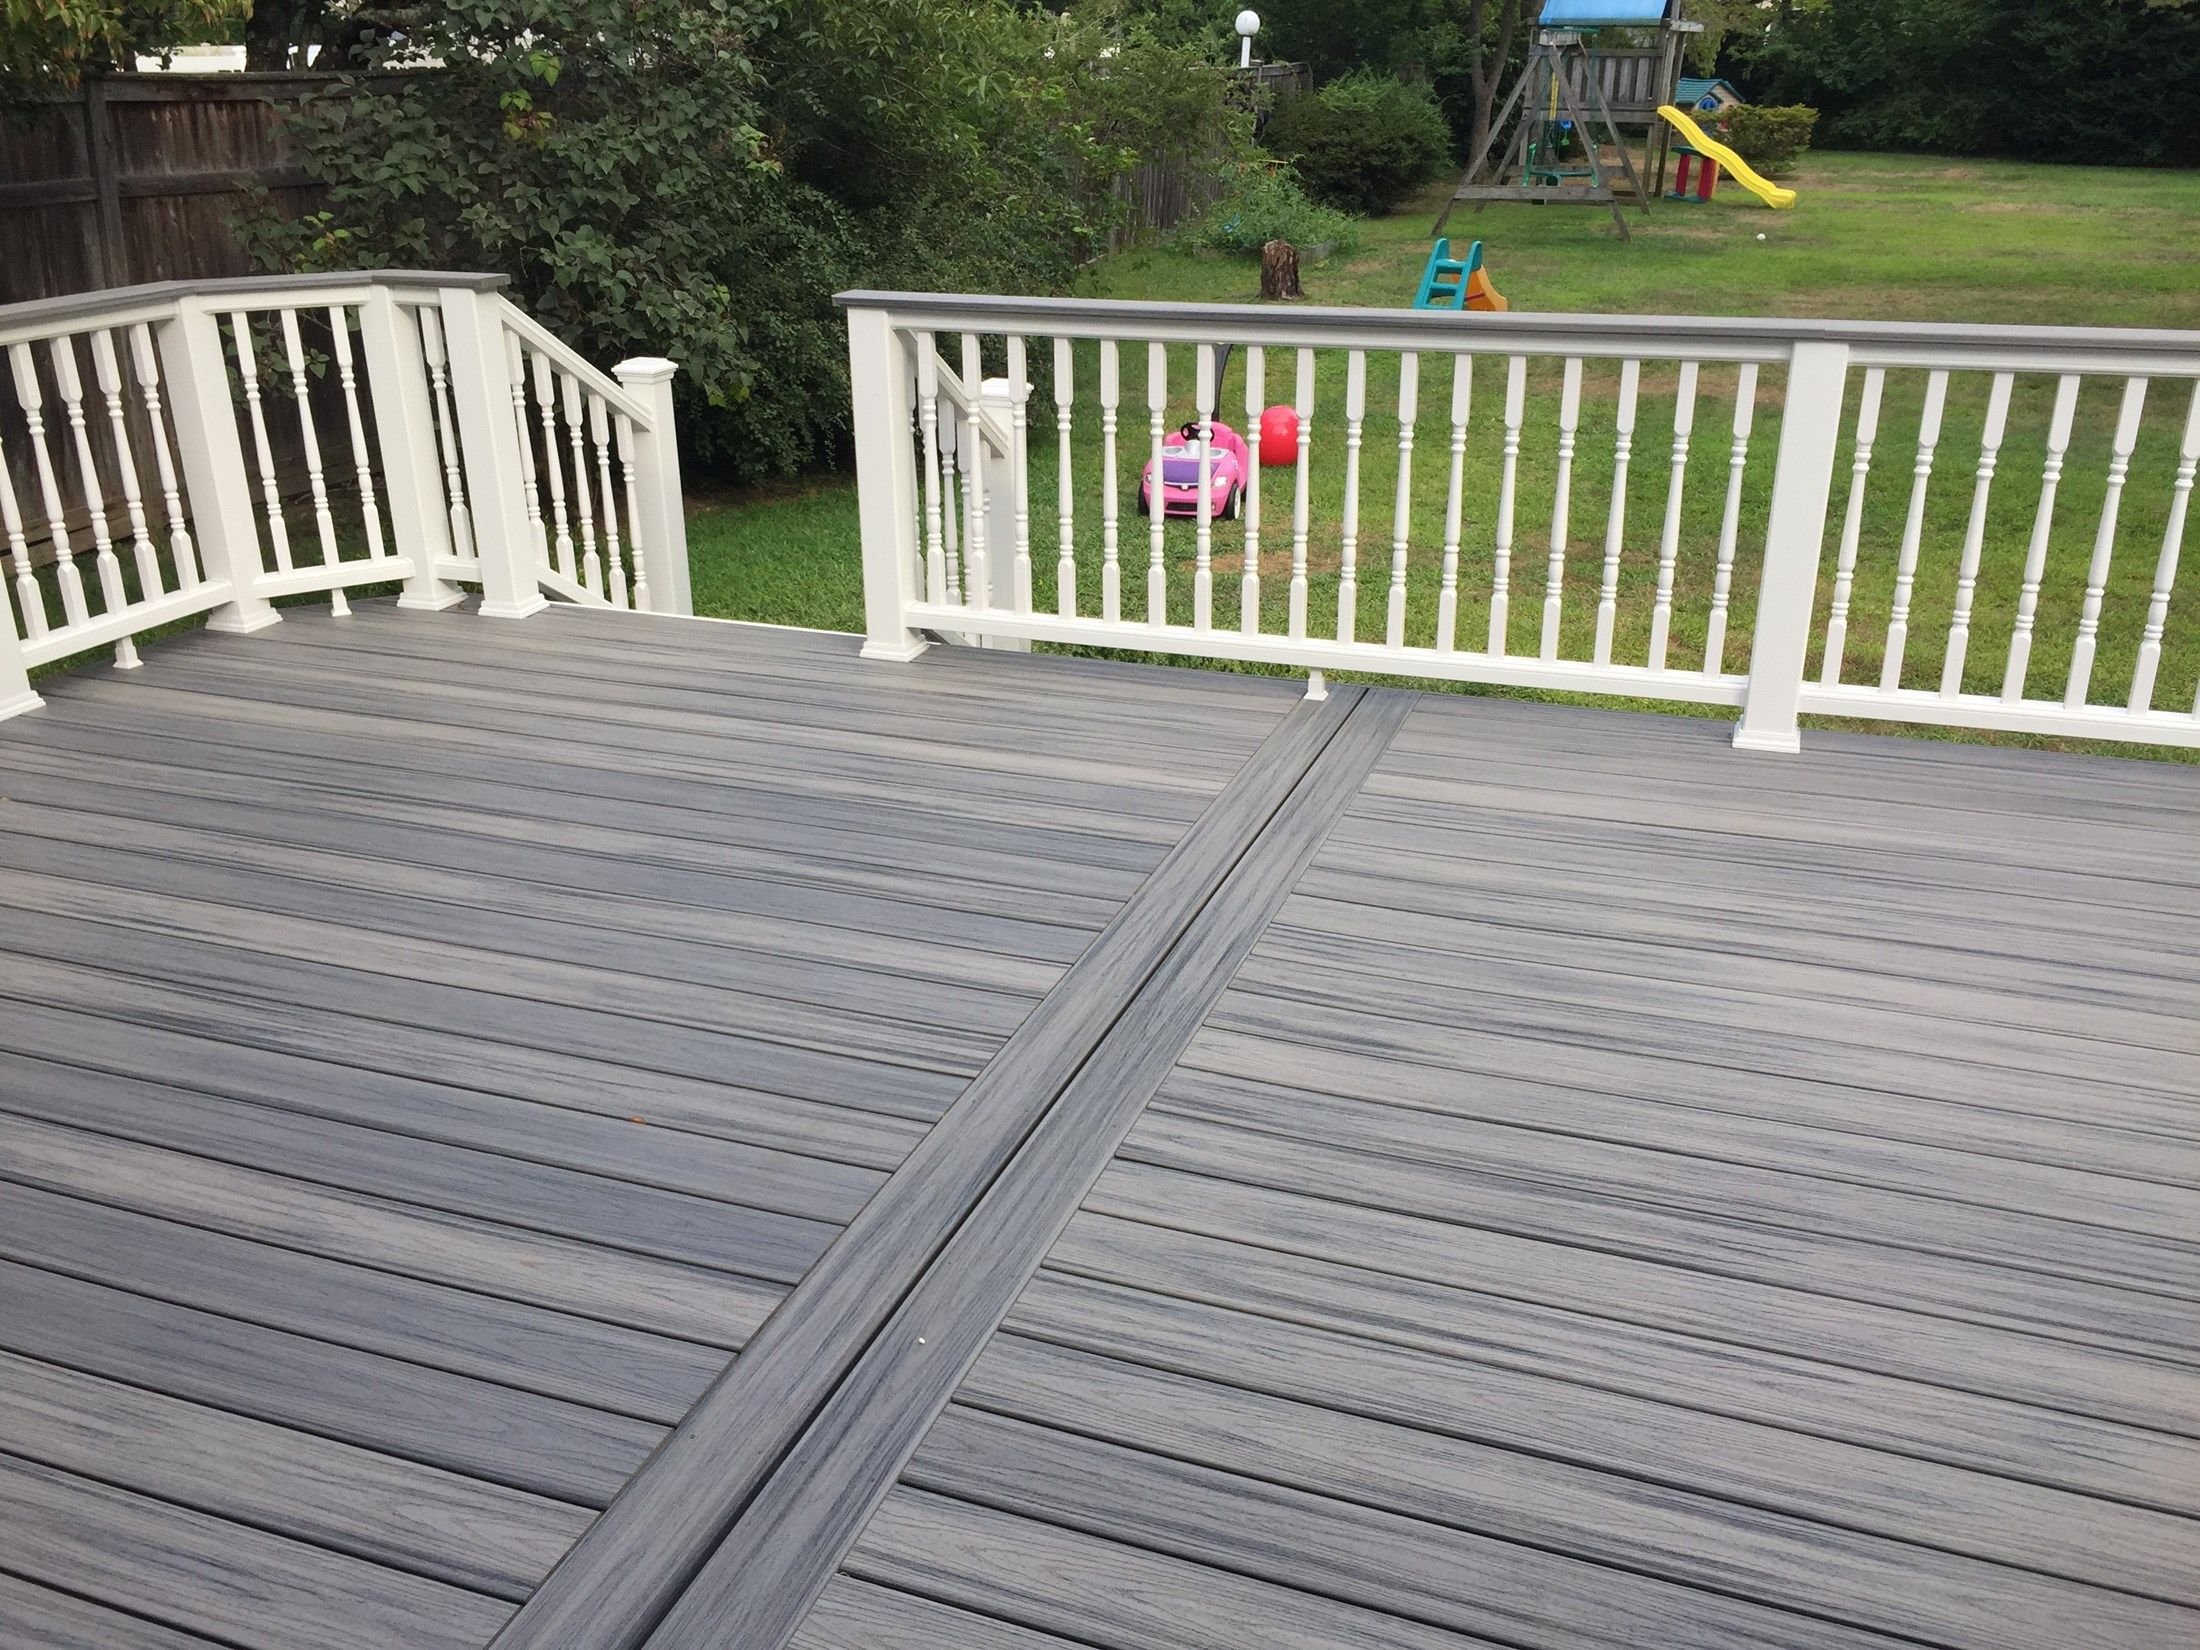 Transcends tropics island mist picture 1750 for Who makes tropics decking